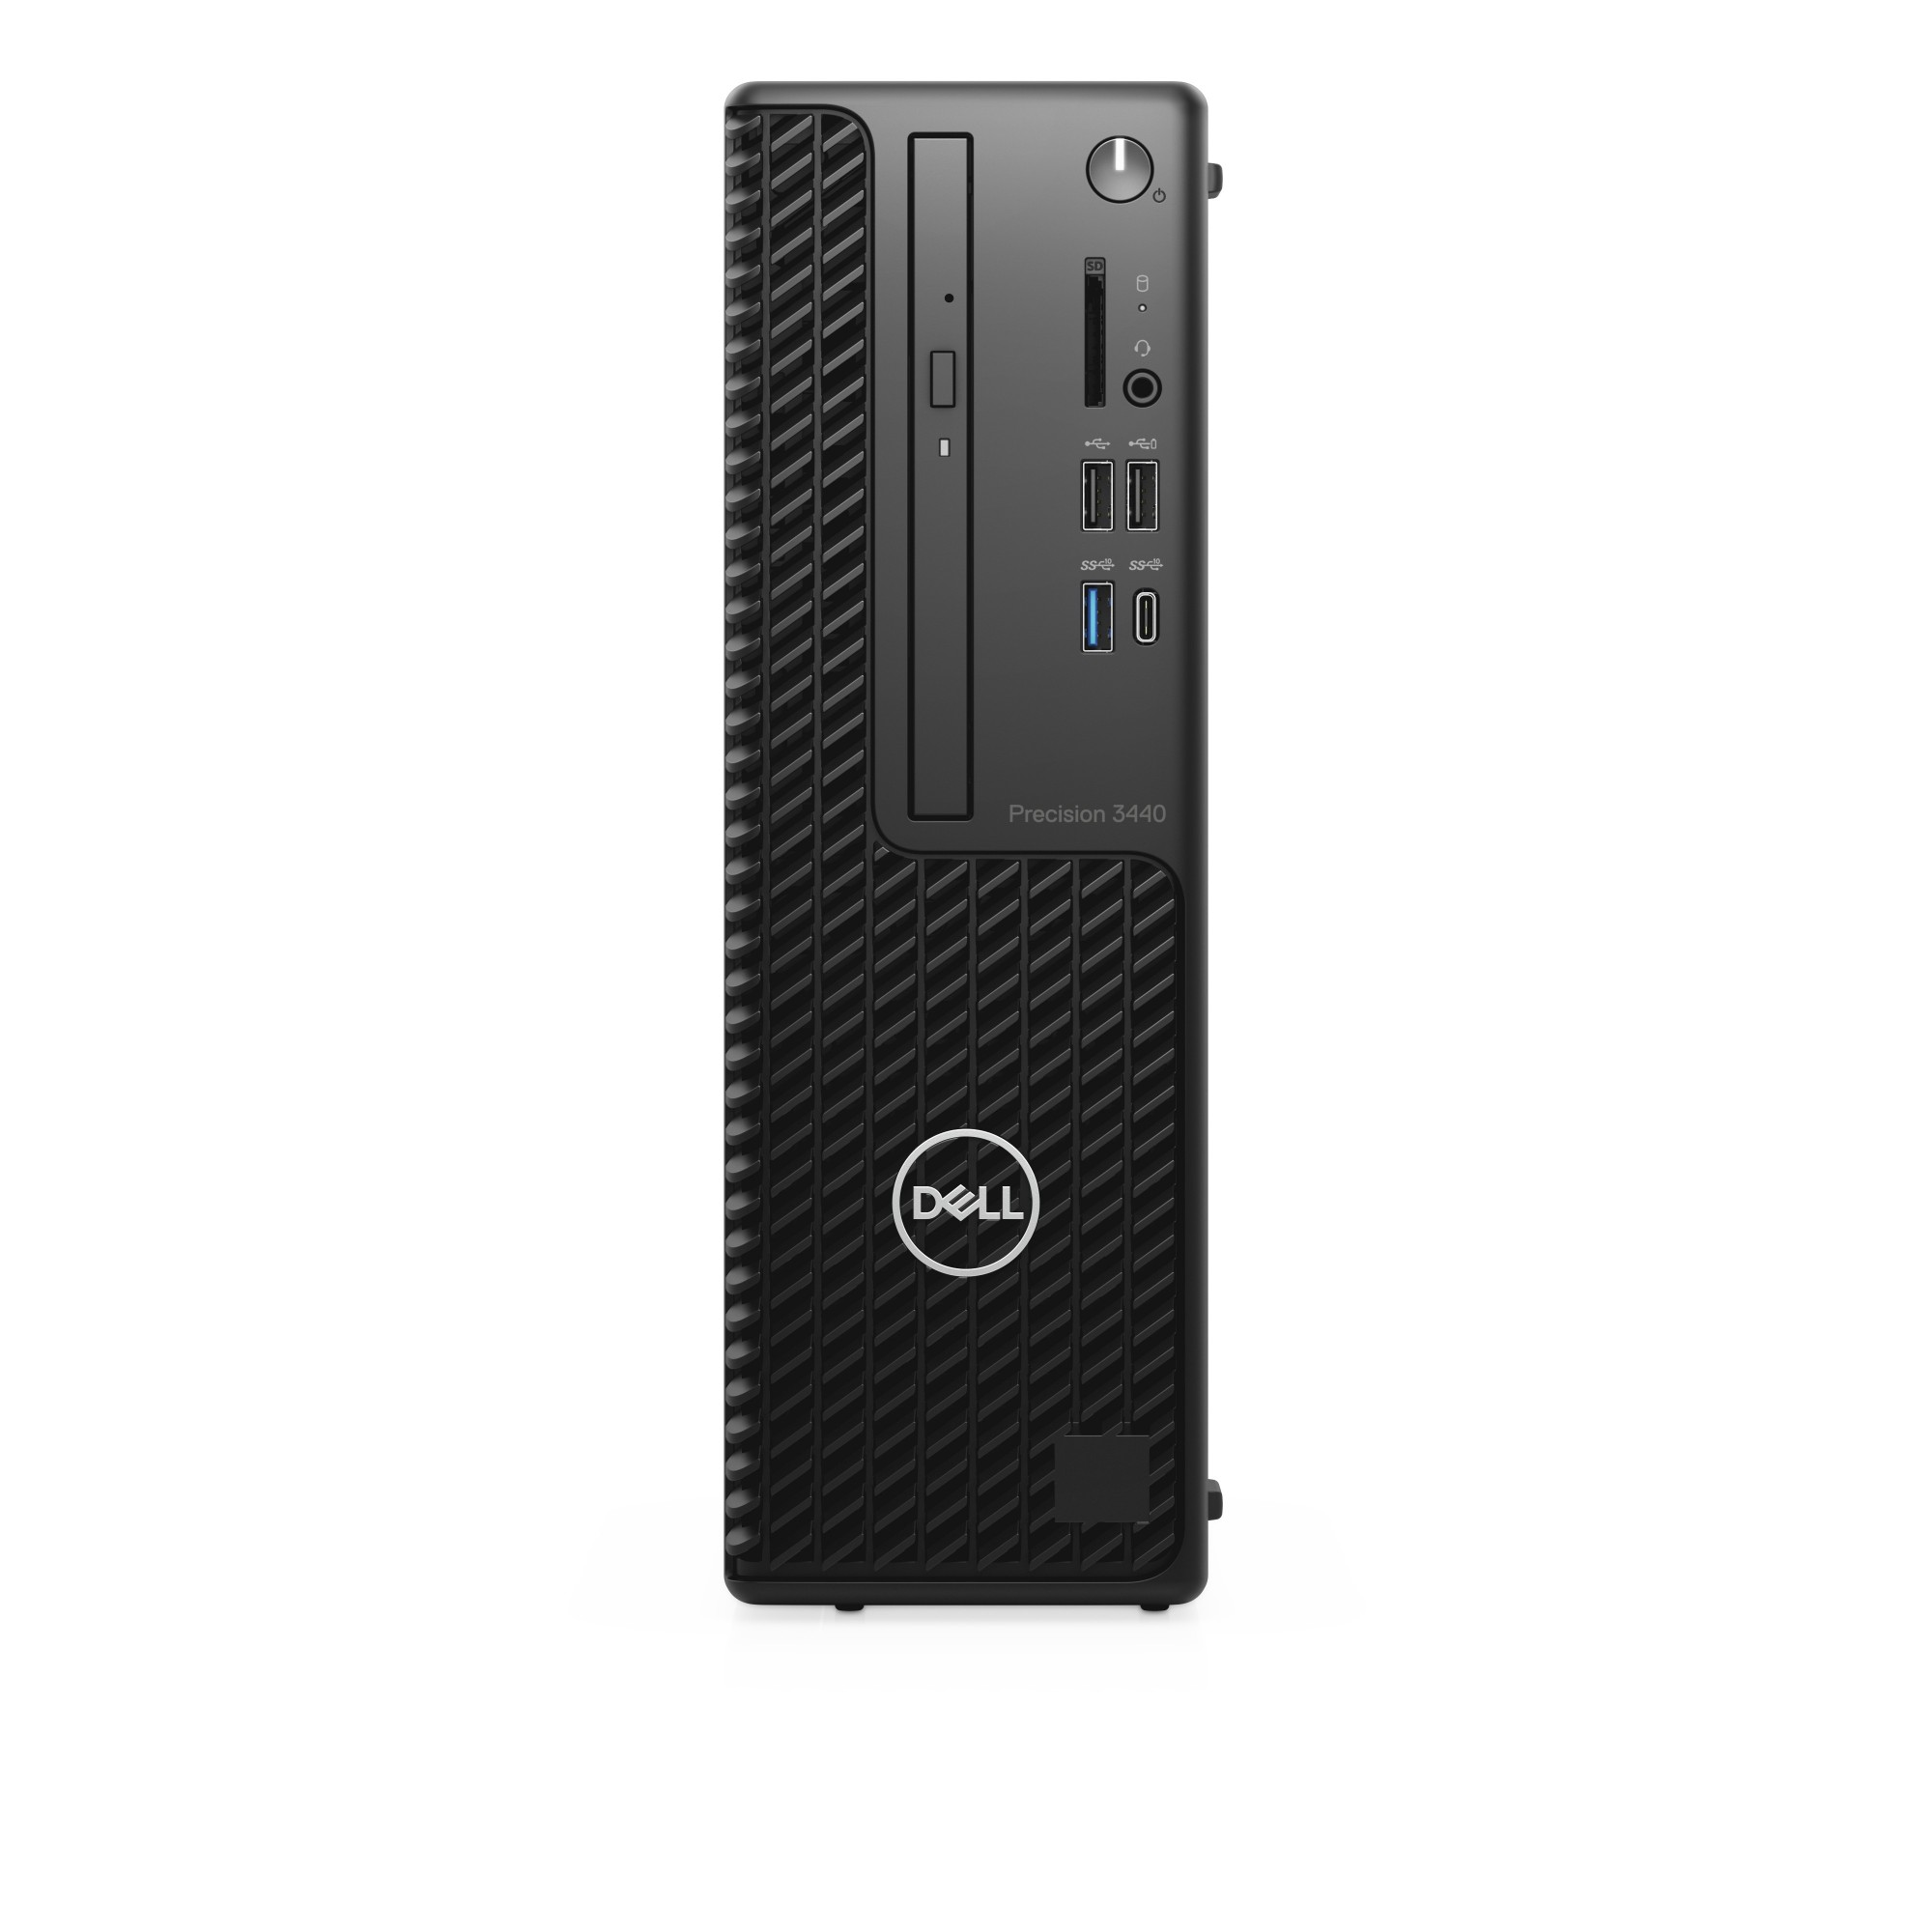 DELL Precision 3440 Intel® Core™ i7 de 10ma Generación i7-10700 16 GB DDR4-SDRAM 512 GB SSD SFF Negro Puesto de trabajo Windows 10 Pro